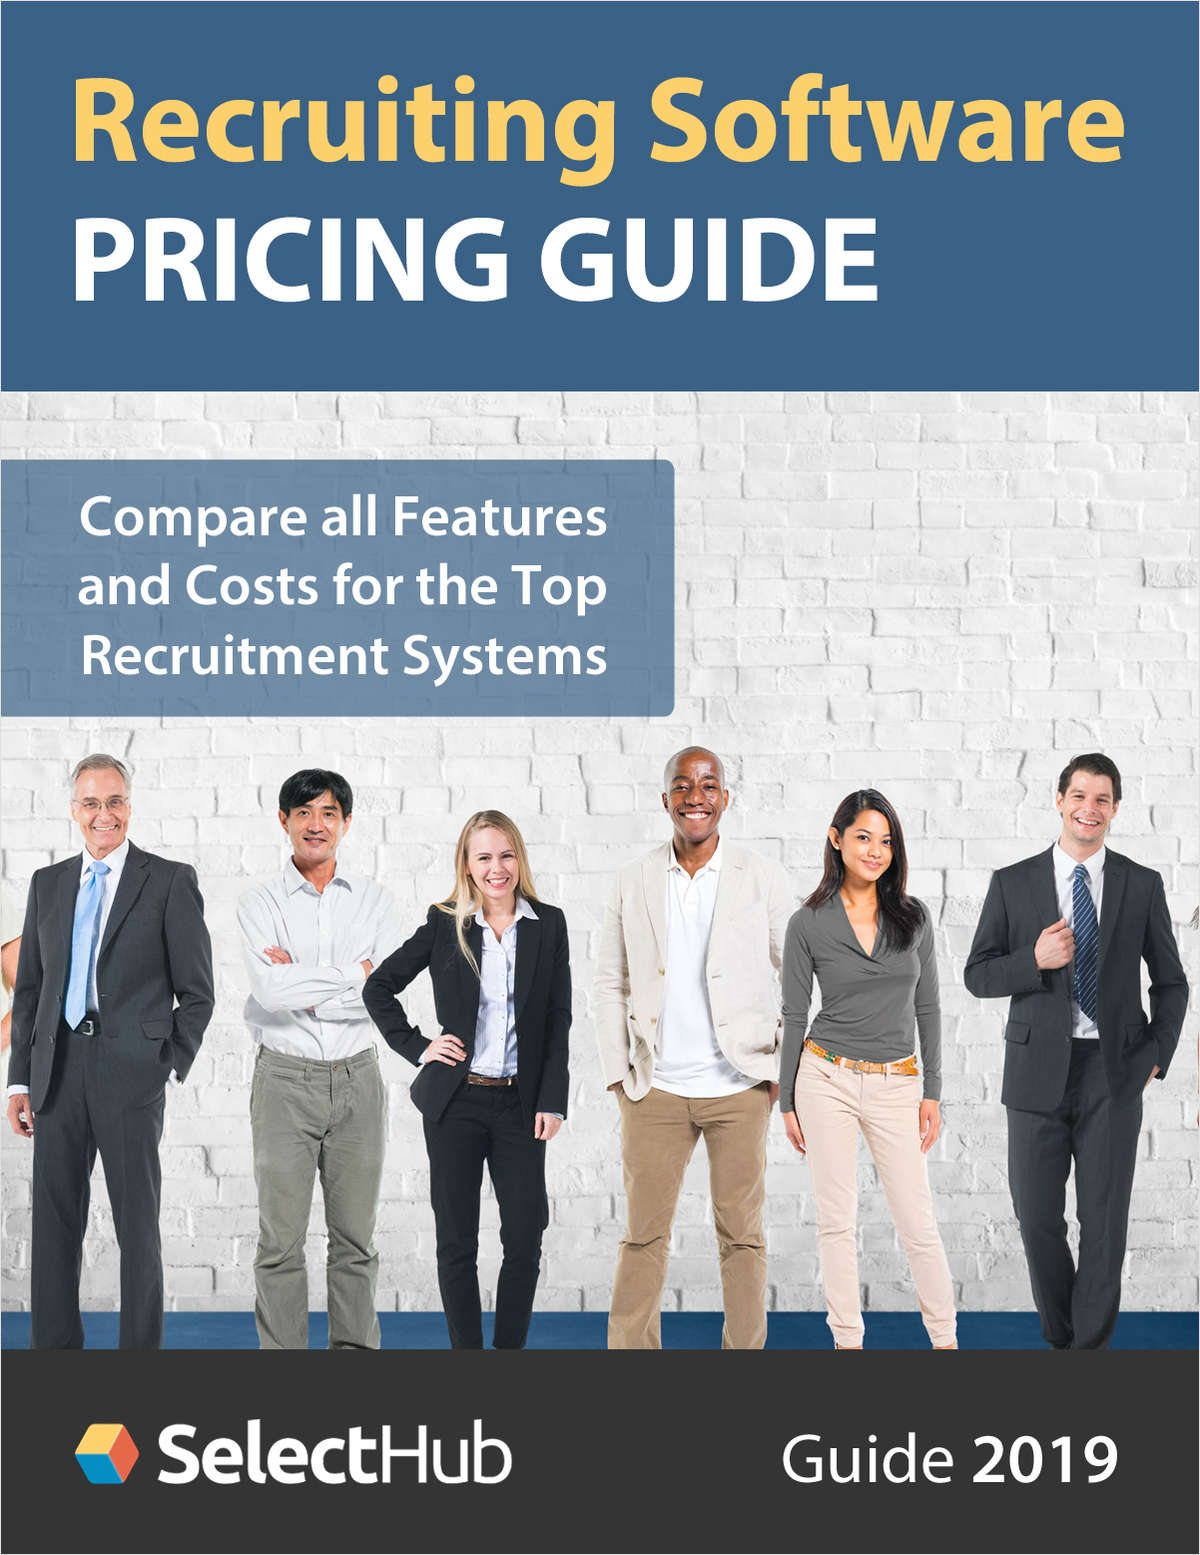 Top Recruiting Software Competitive Pricing Guide 2019